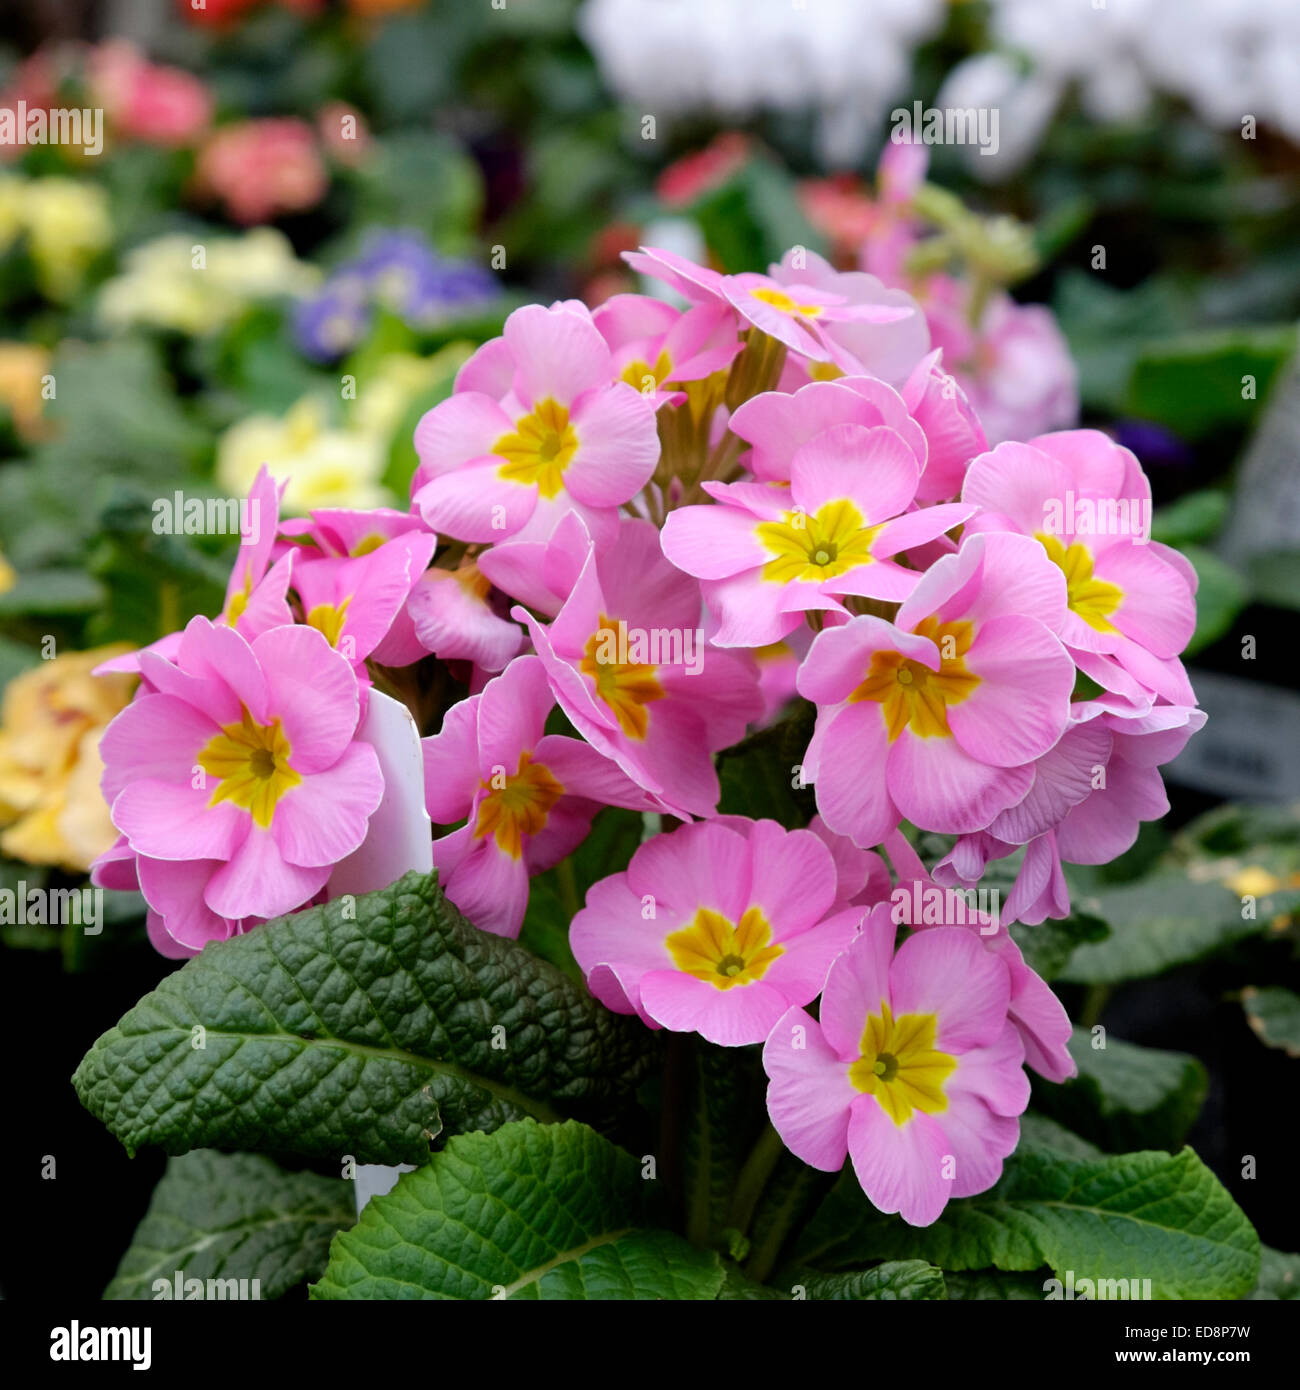 Melanium or pink pansy flowers in a small grouping stock photo melanium or pink pansy flowers in a small grouping mightylinksfo